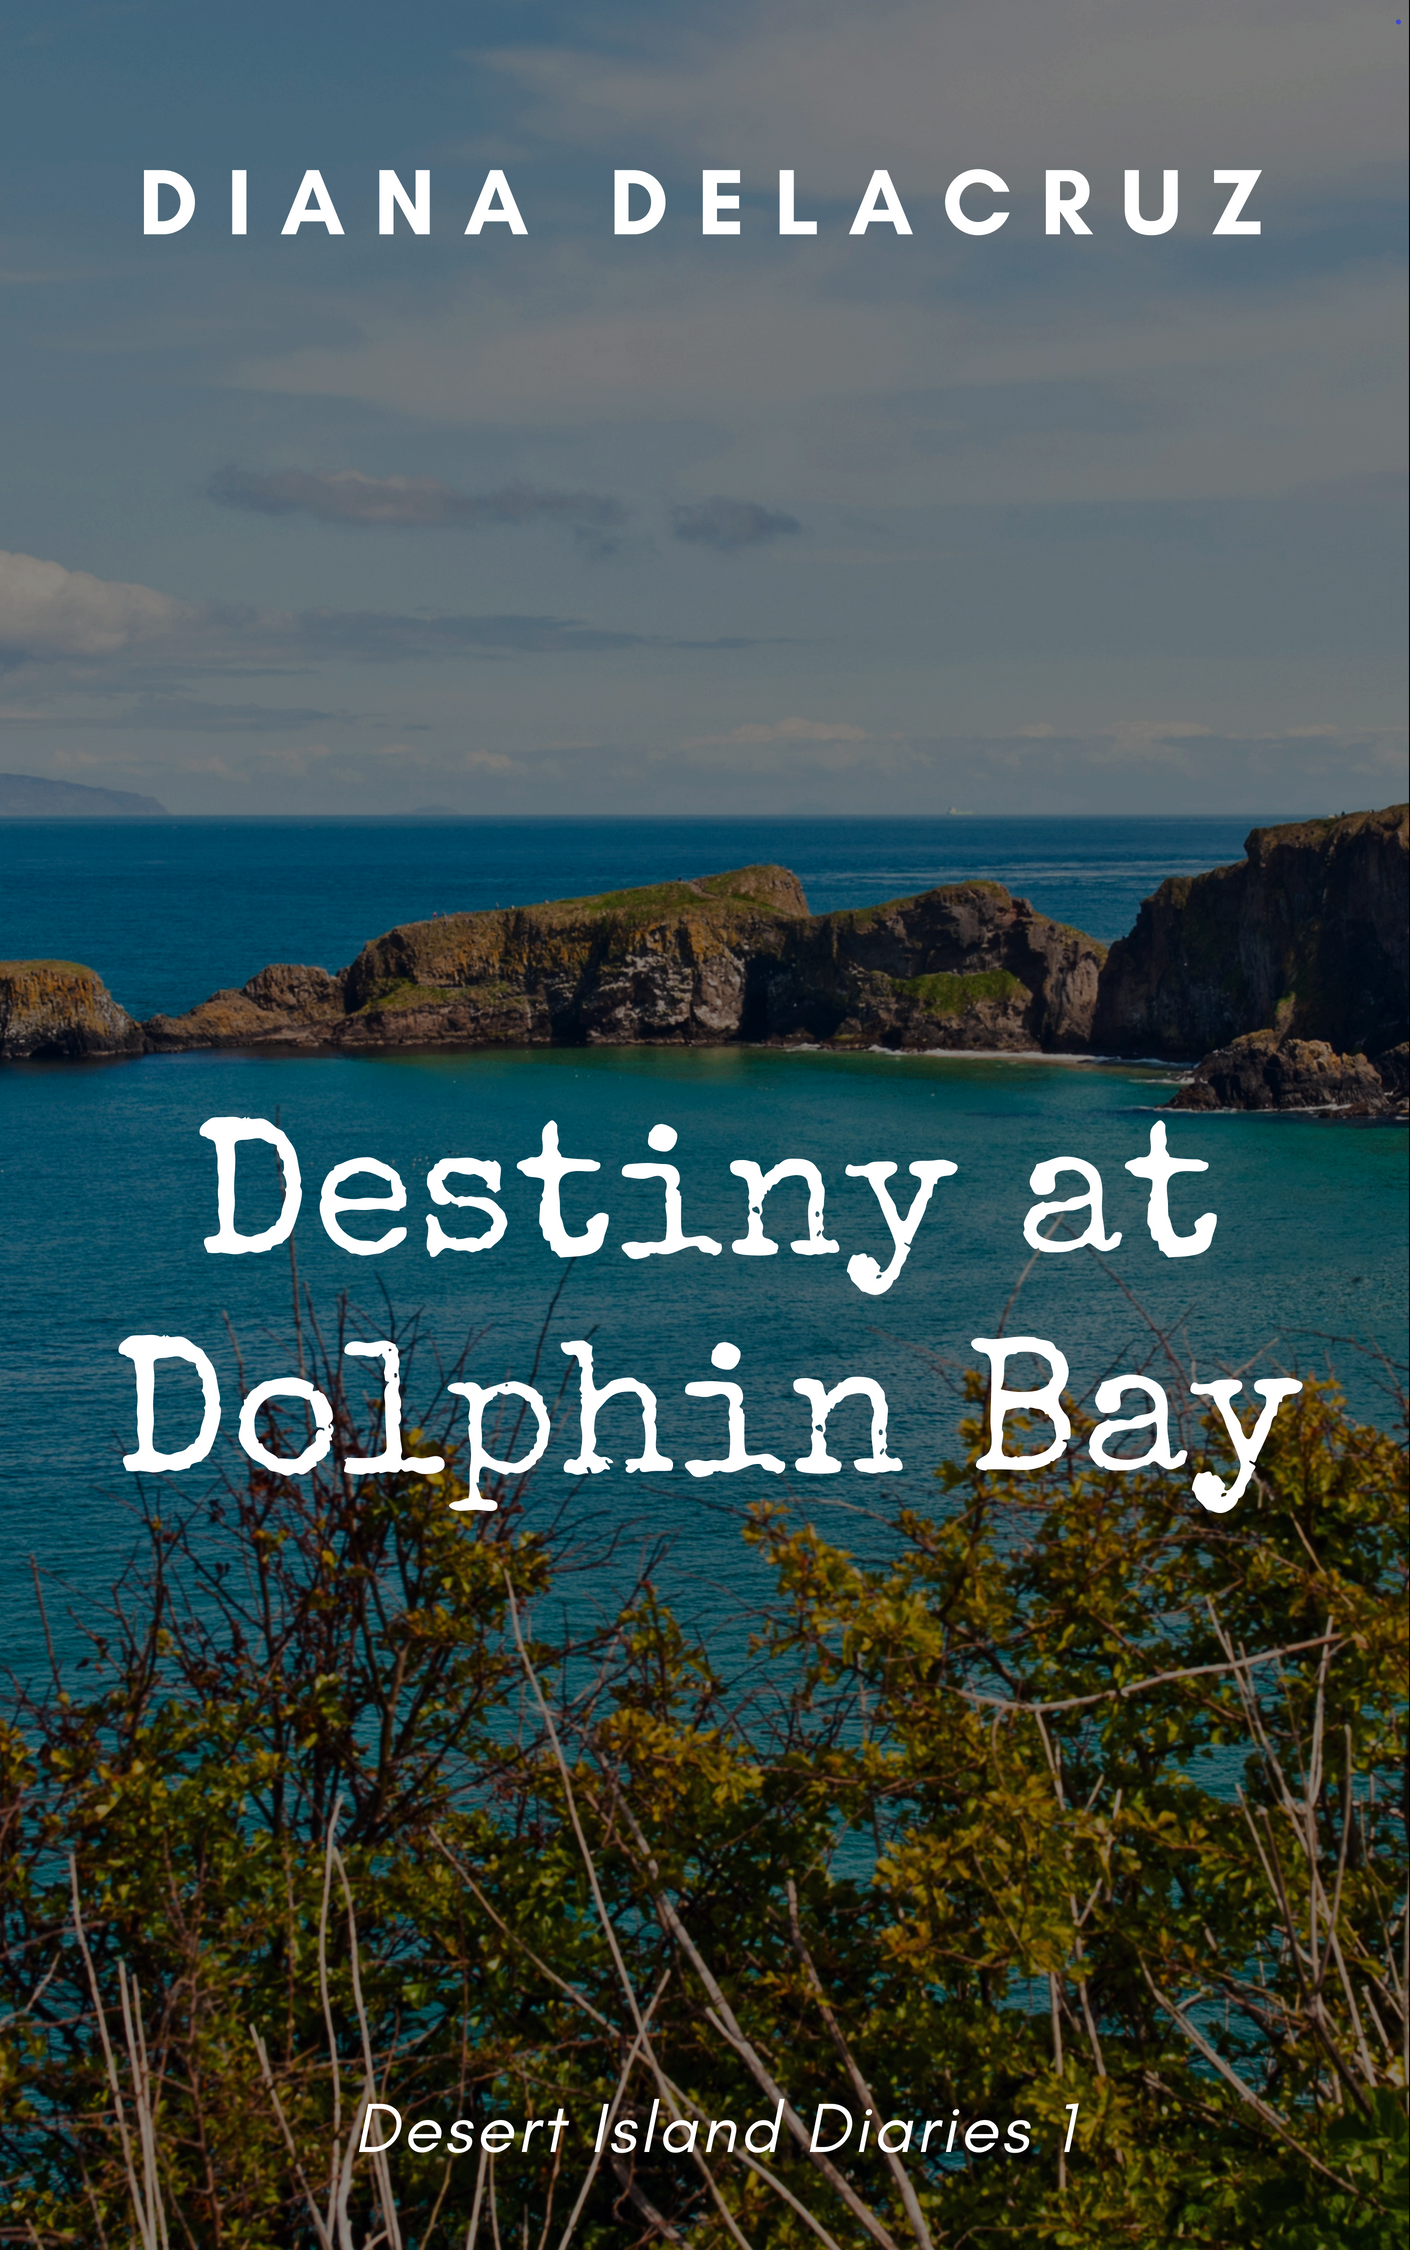 Dolphin Bay book cover